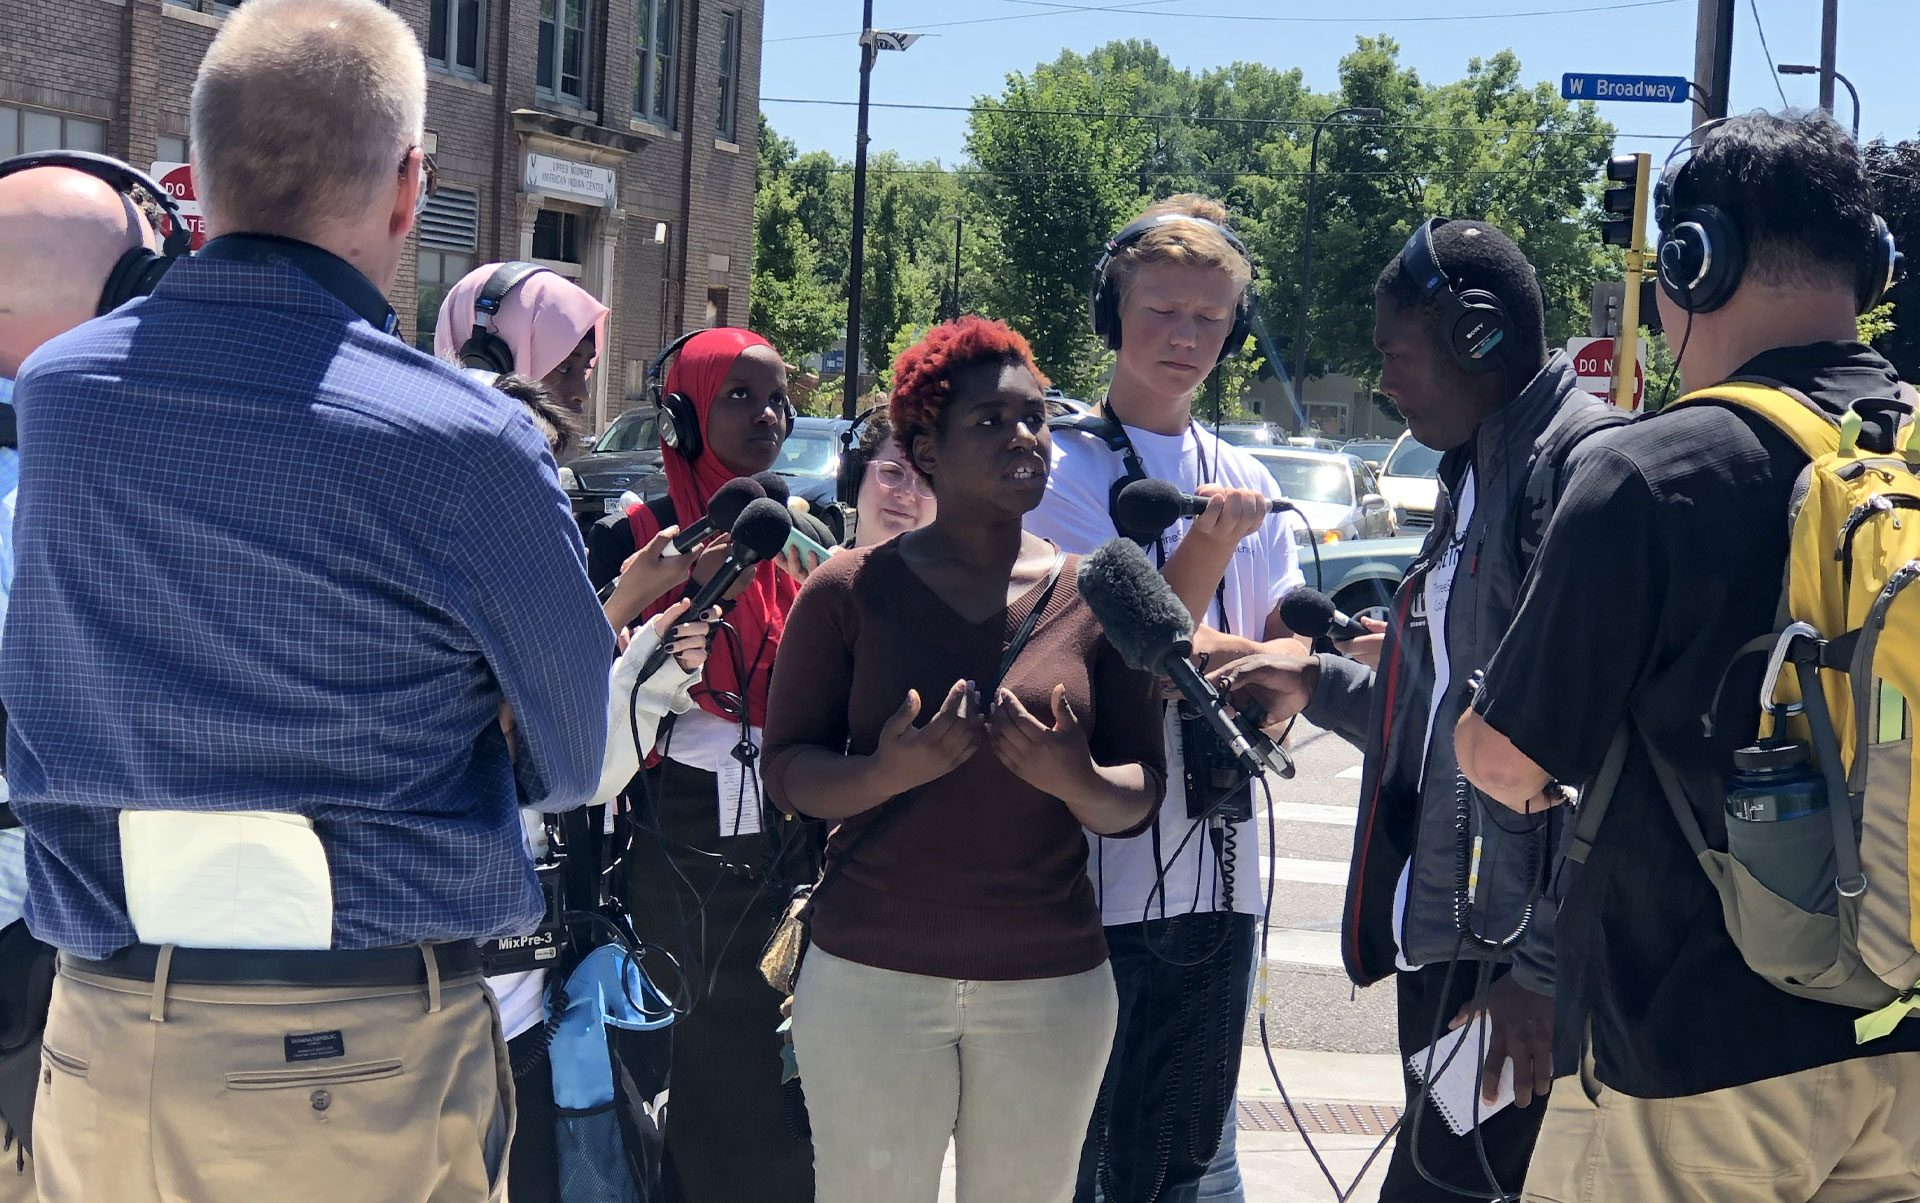 Someone stands surrounded by reporters wearing equipment like headphones and microphones. The center person is speaking into the microphones.